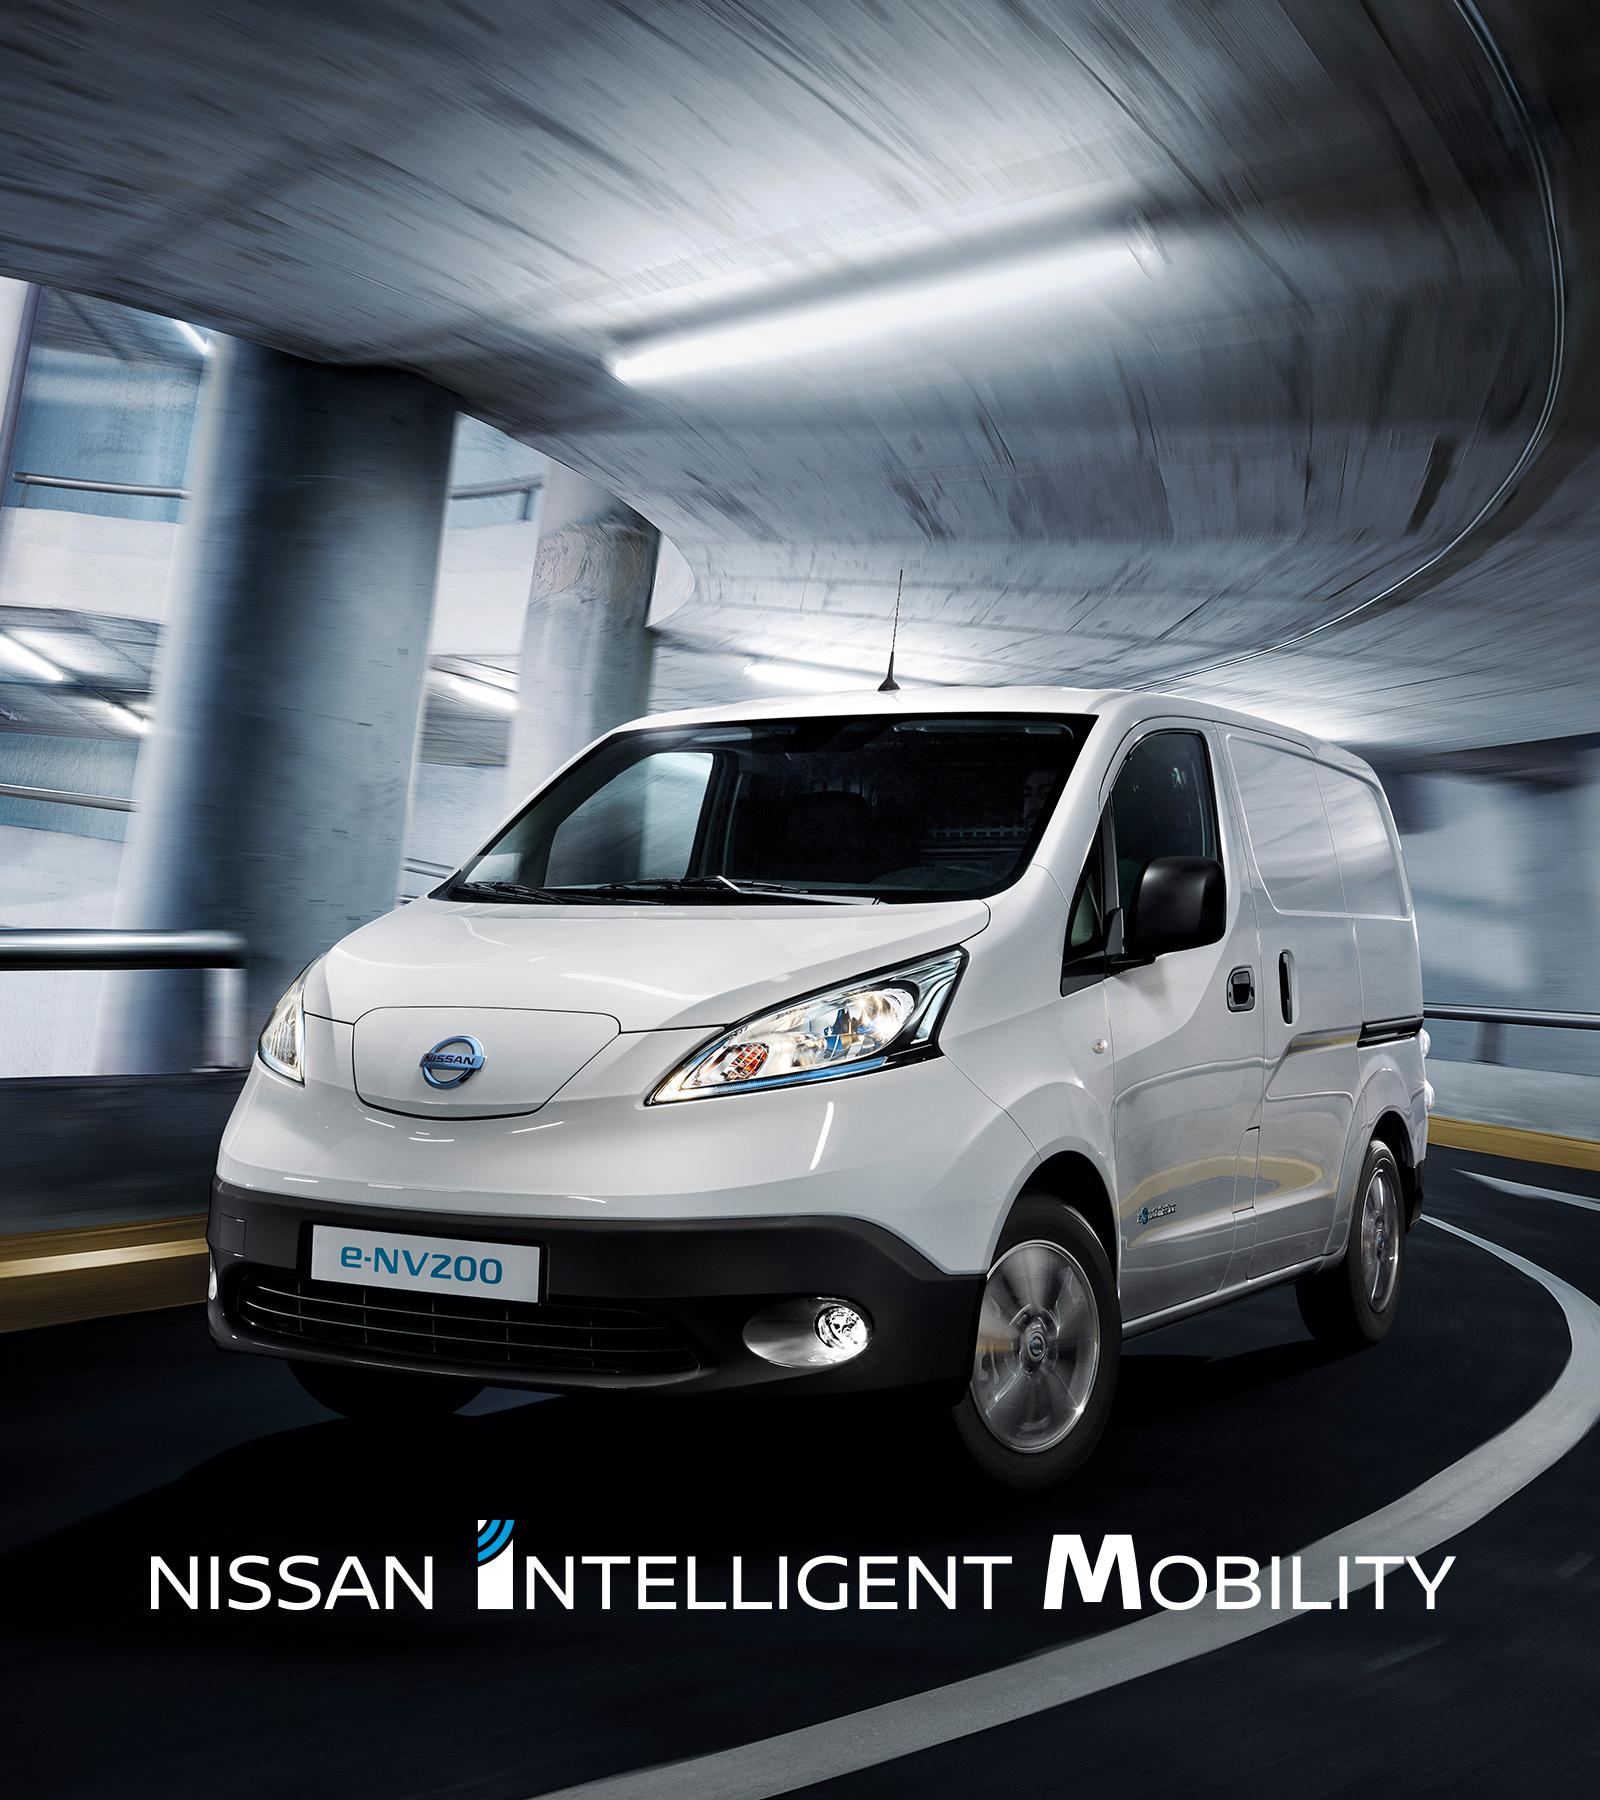 New Nissan e-NV200 driving in a parking